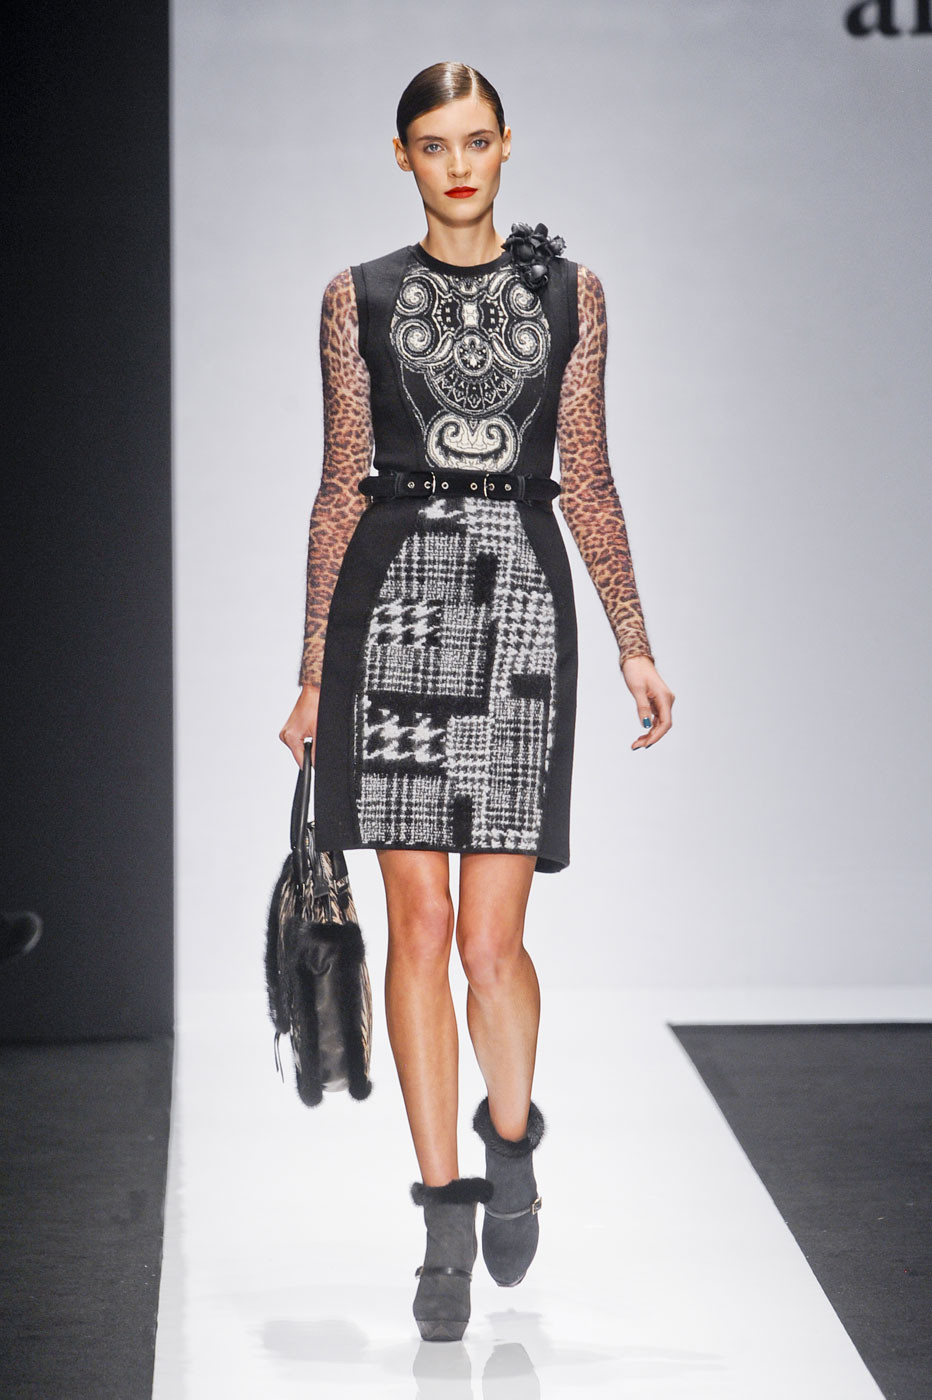 Angelo Marani at Milan Fashion Week Fall 2012